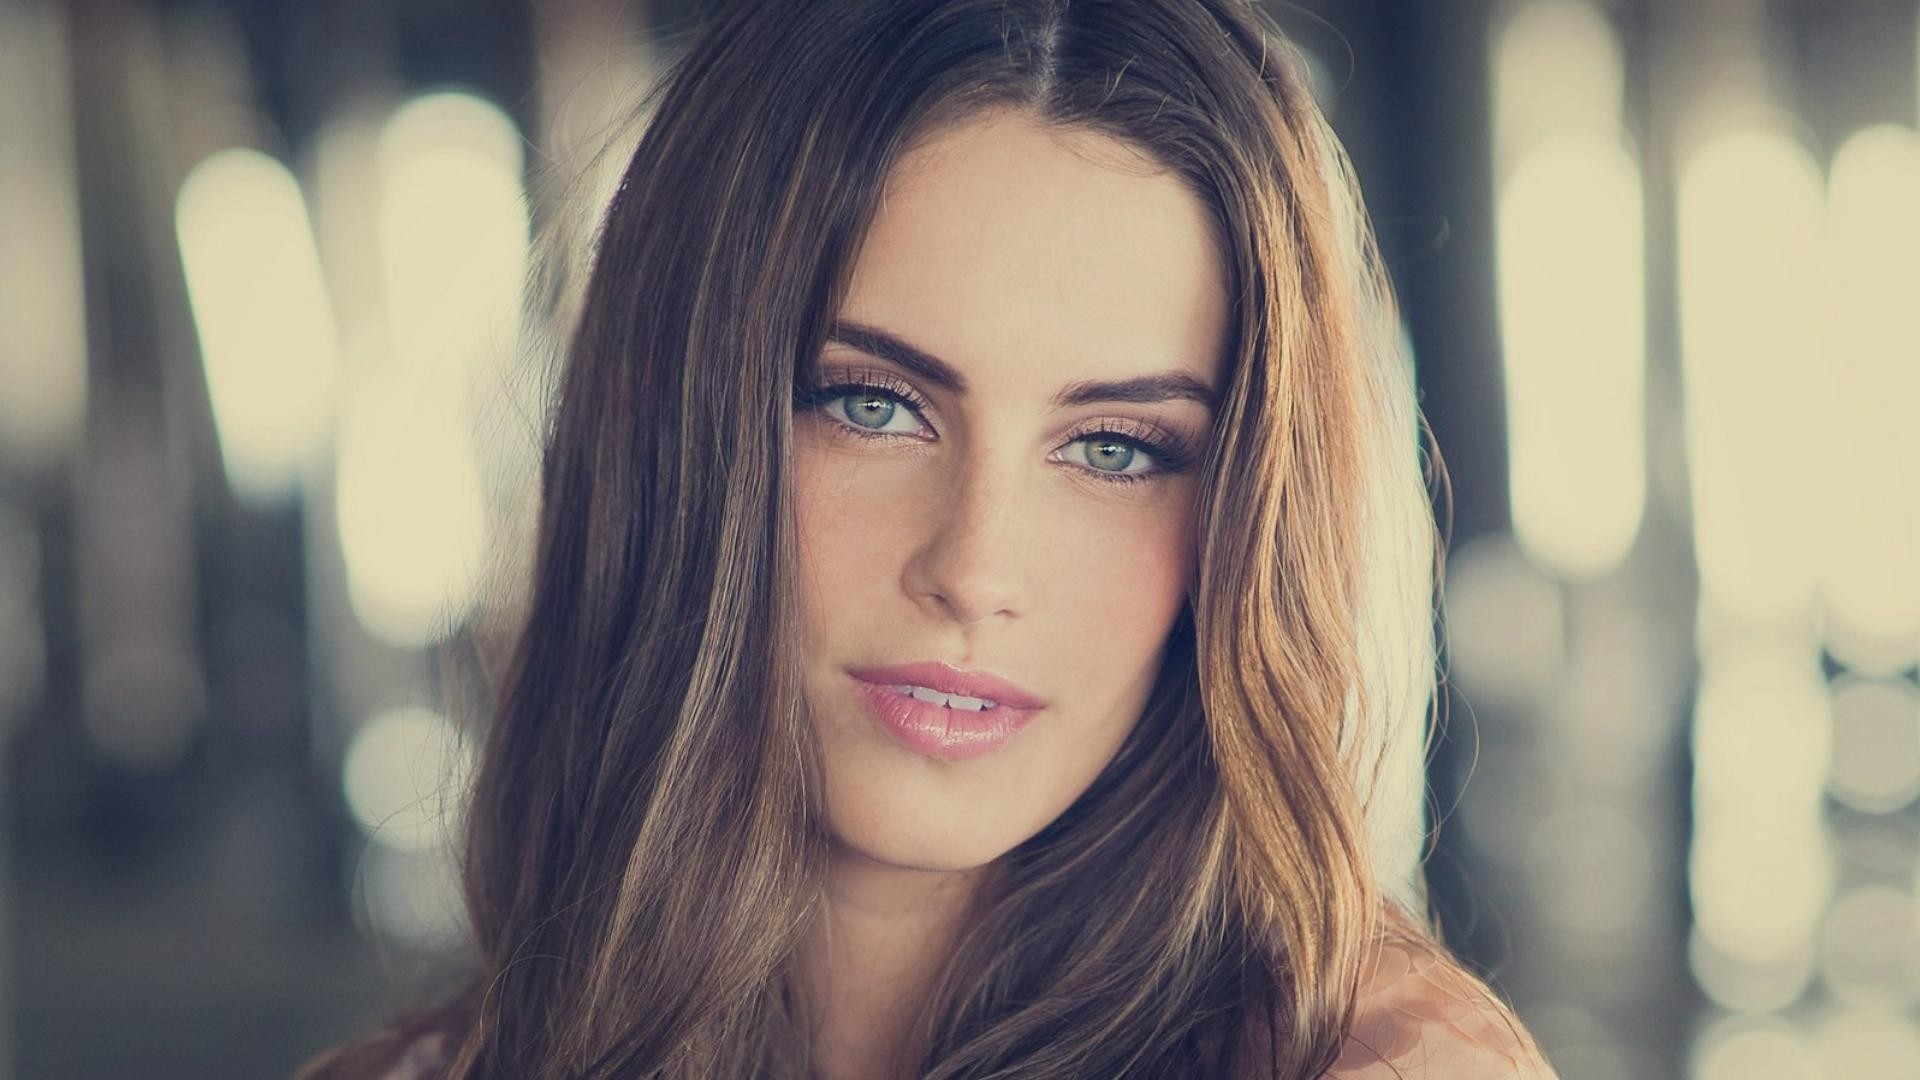 14 Hd Jessica Lowndes Wallpapers Hdwallsource Com